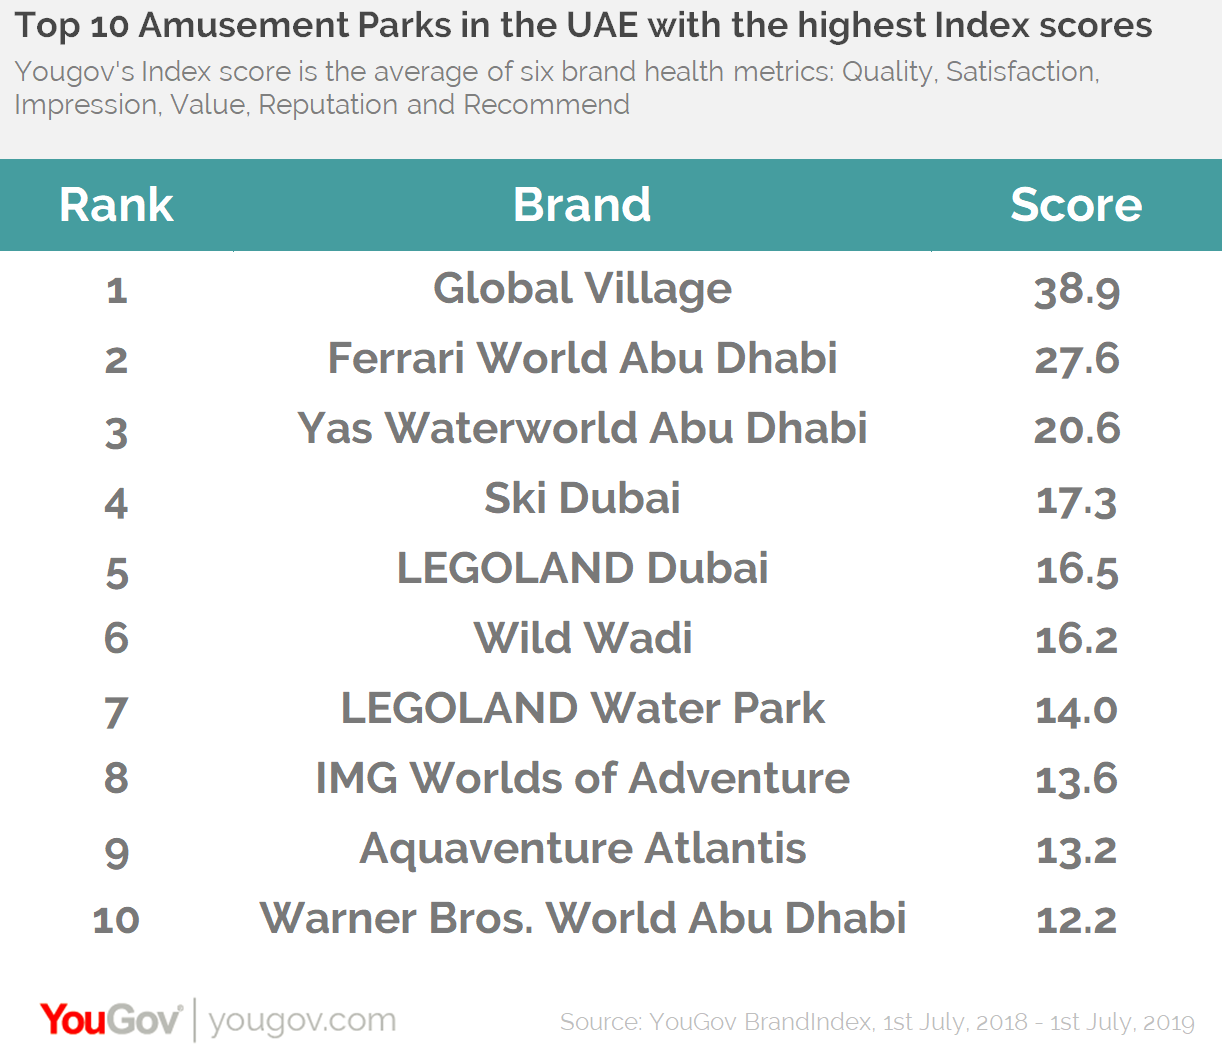 Top amusement parks in the UAE